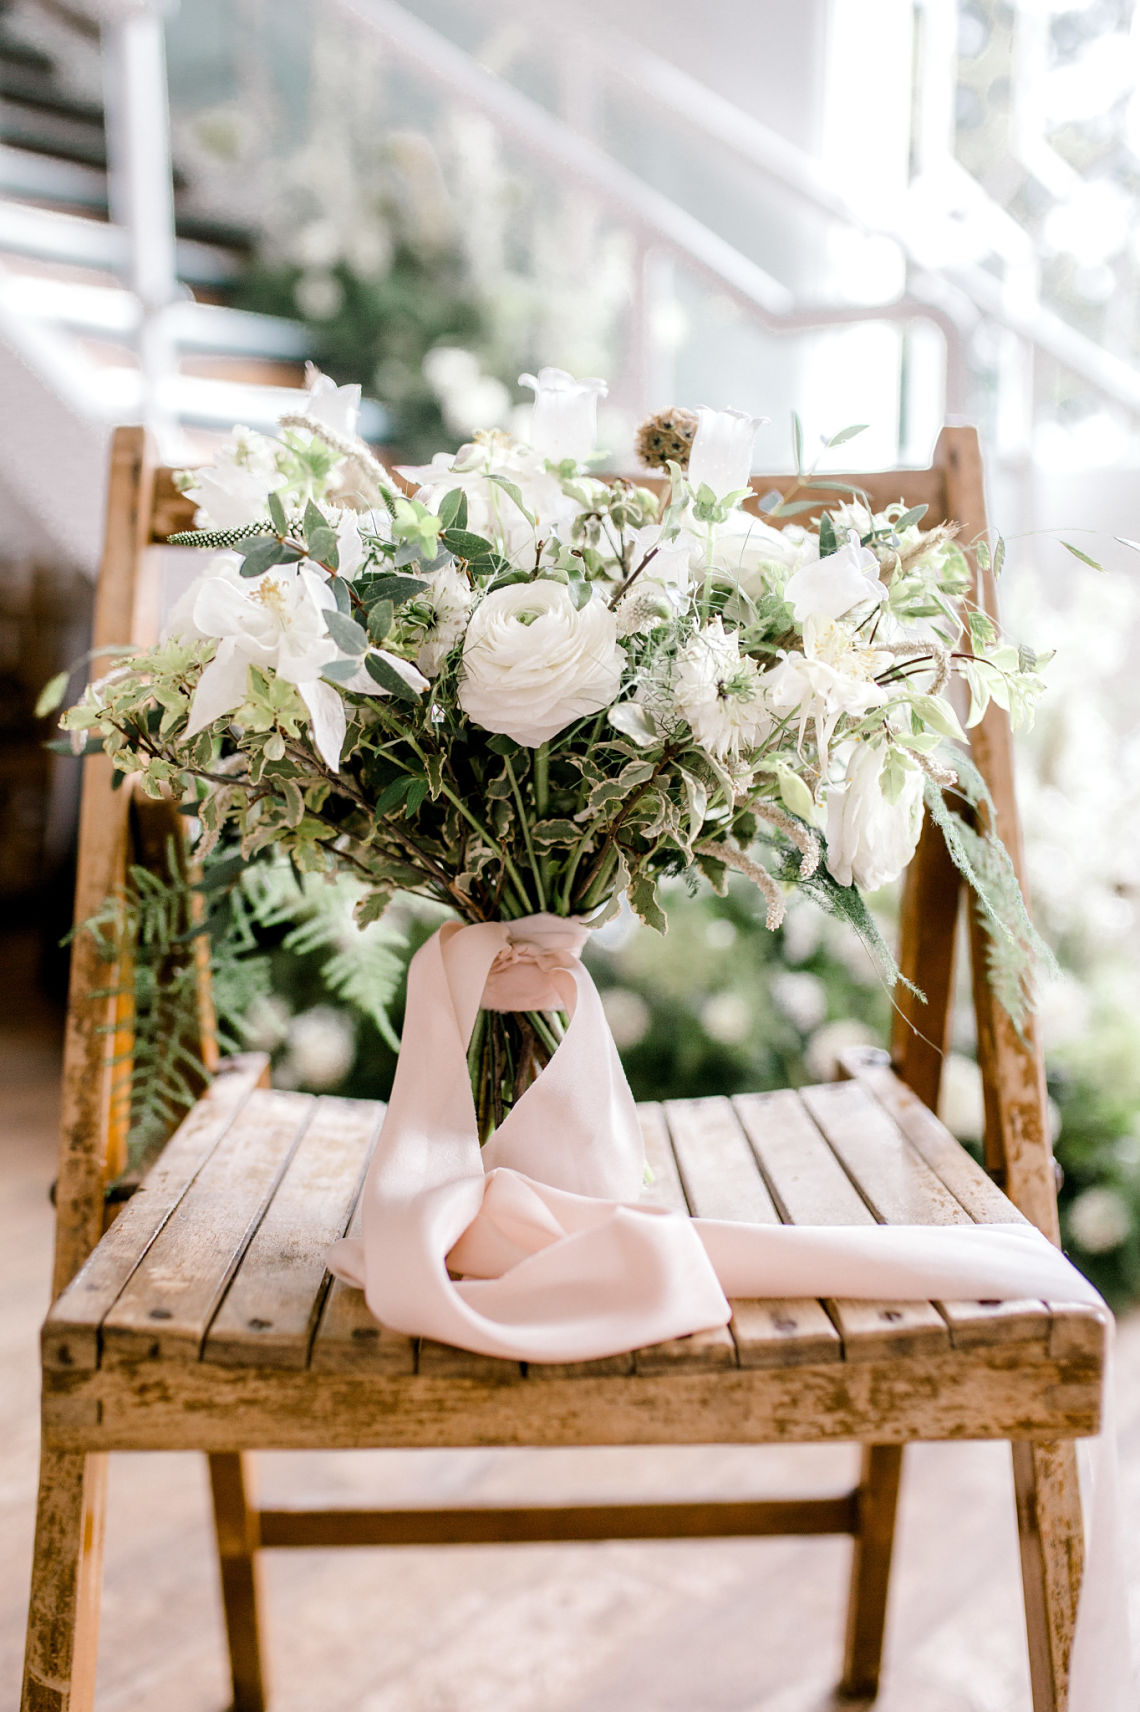 28. Styled Shoot at The Old Parish Rooms - Romantic Modern Neutrals - neutral bouquet.jpg